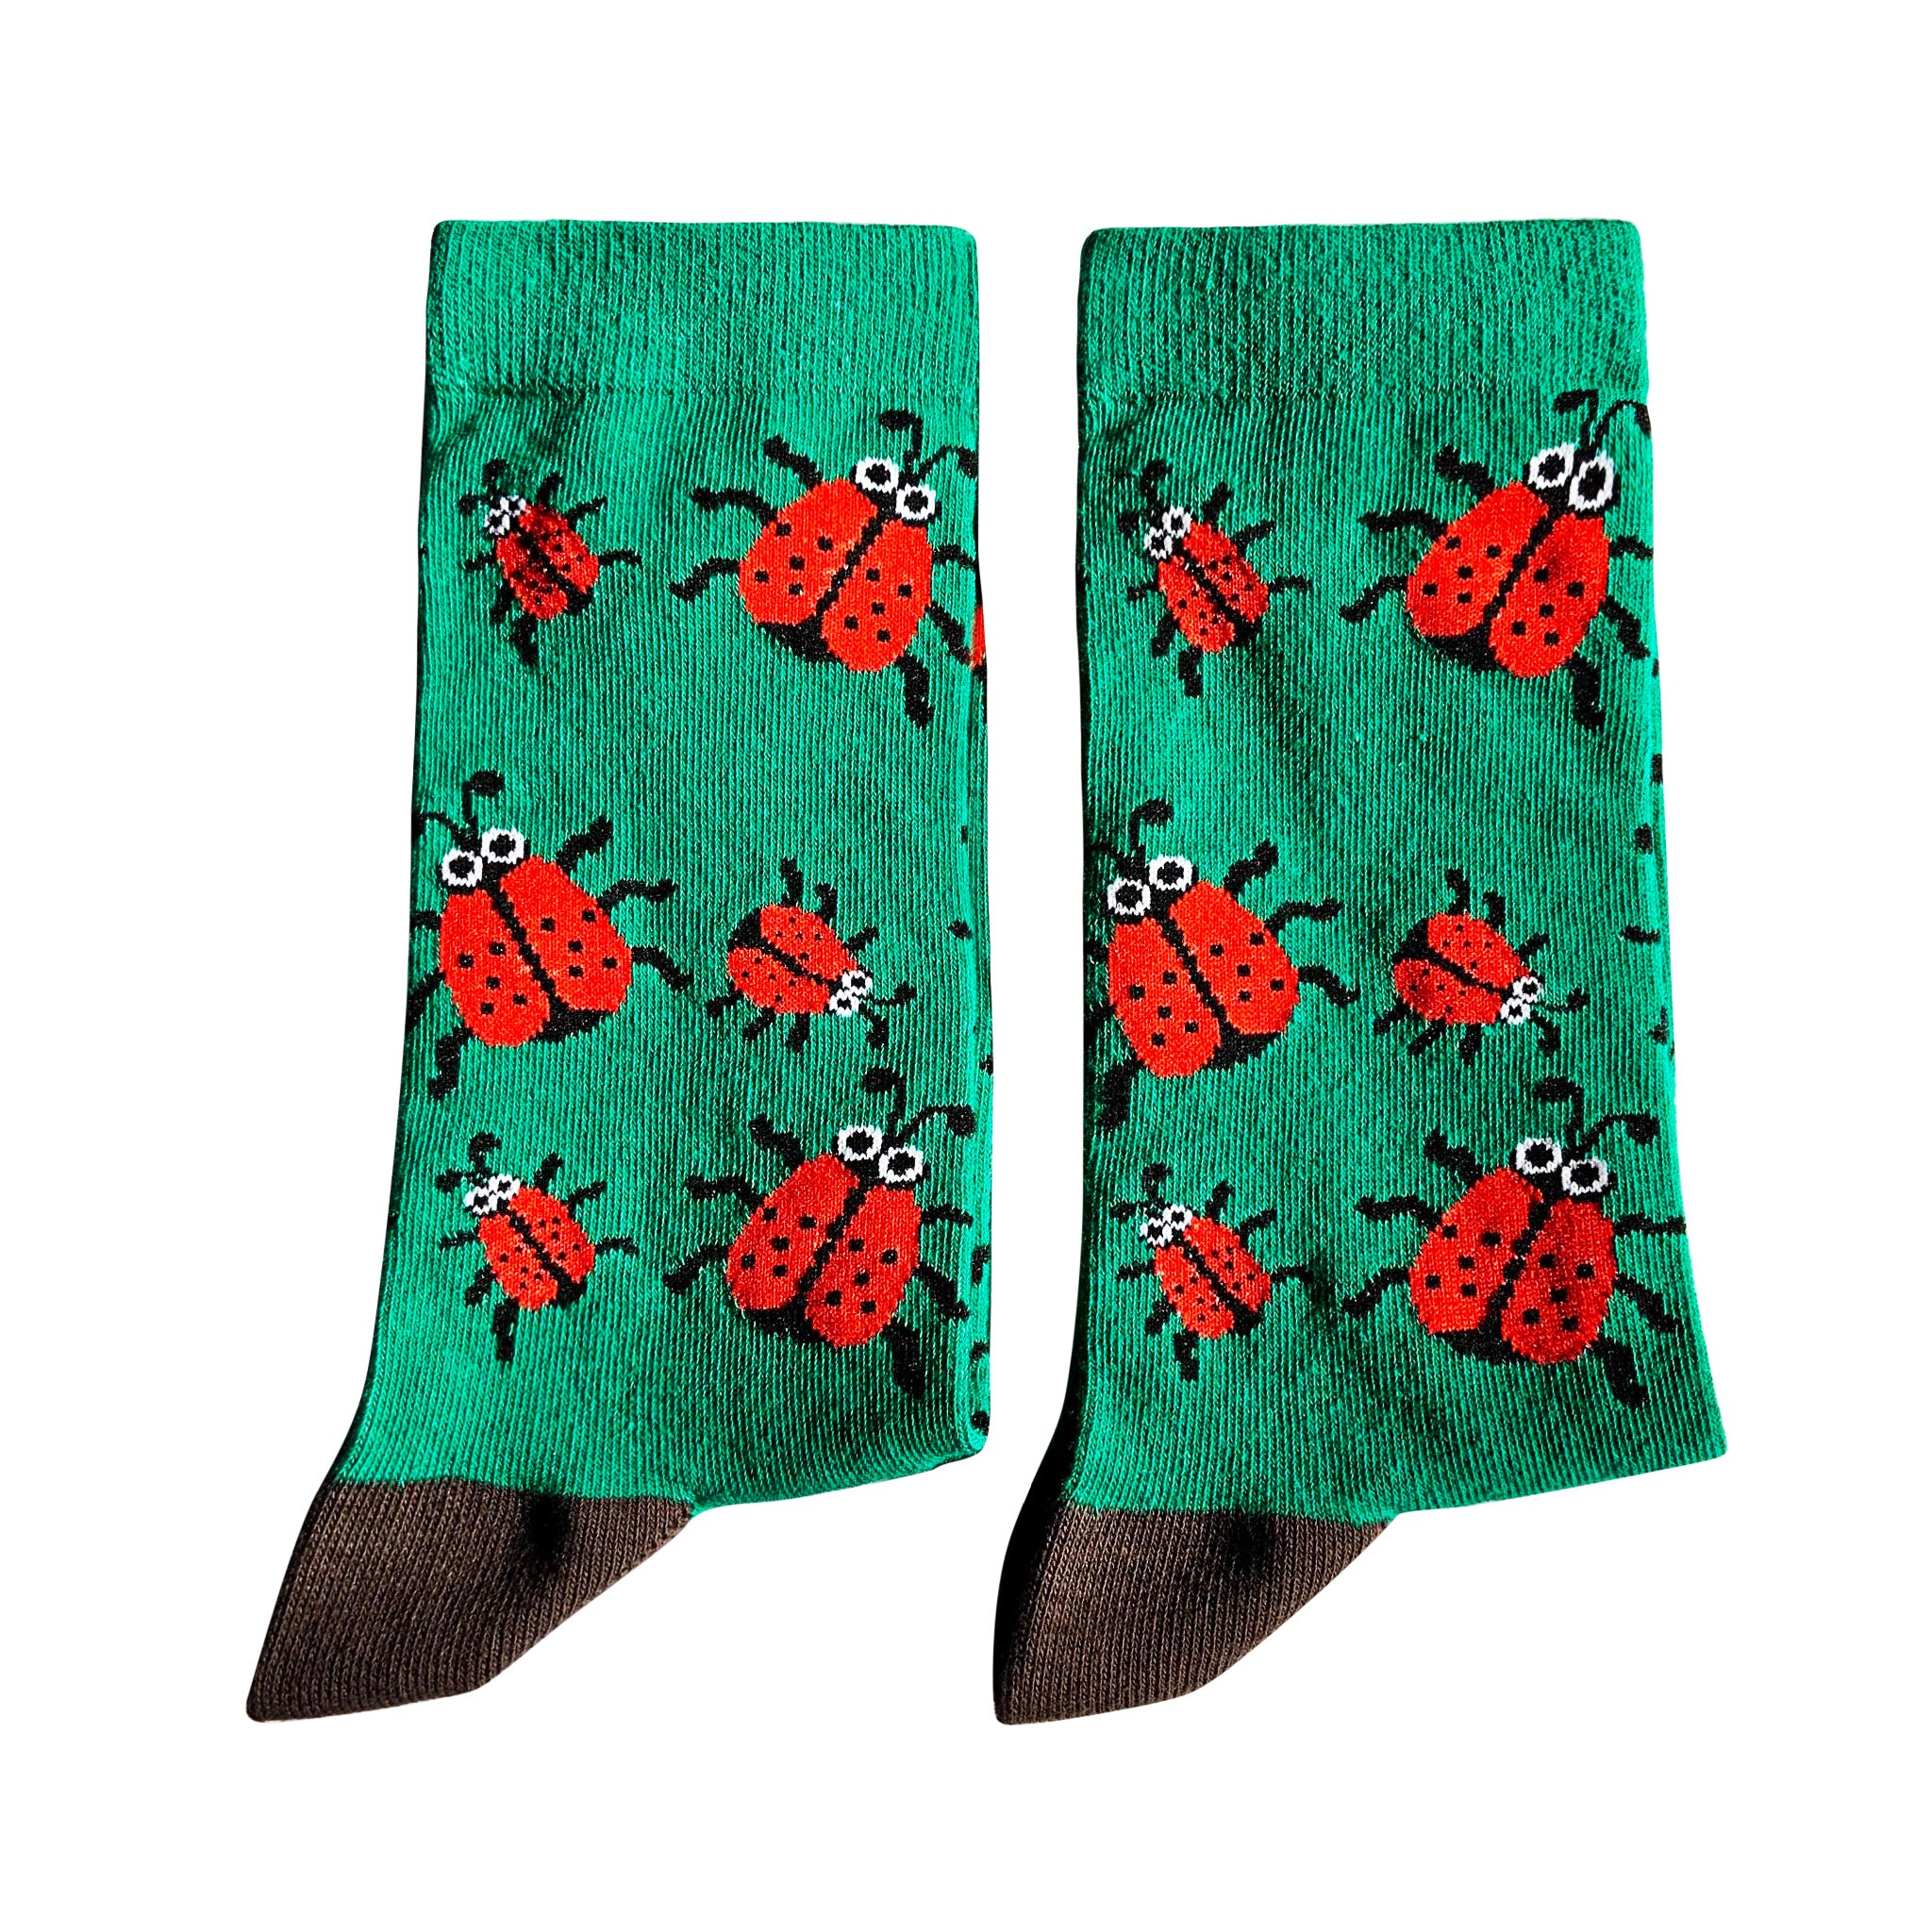 Jolly Soles Medium Crew Ladybird socks